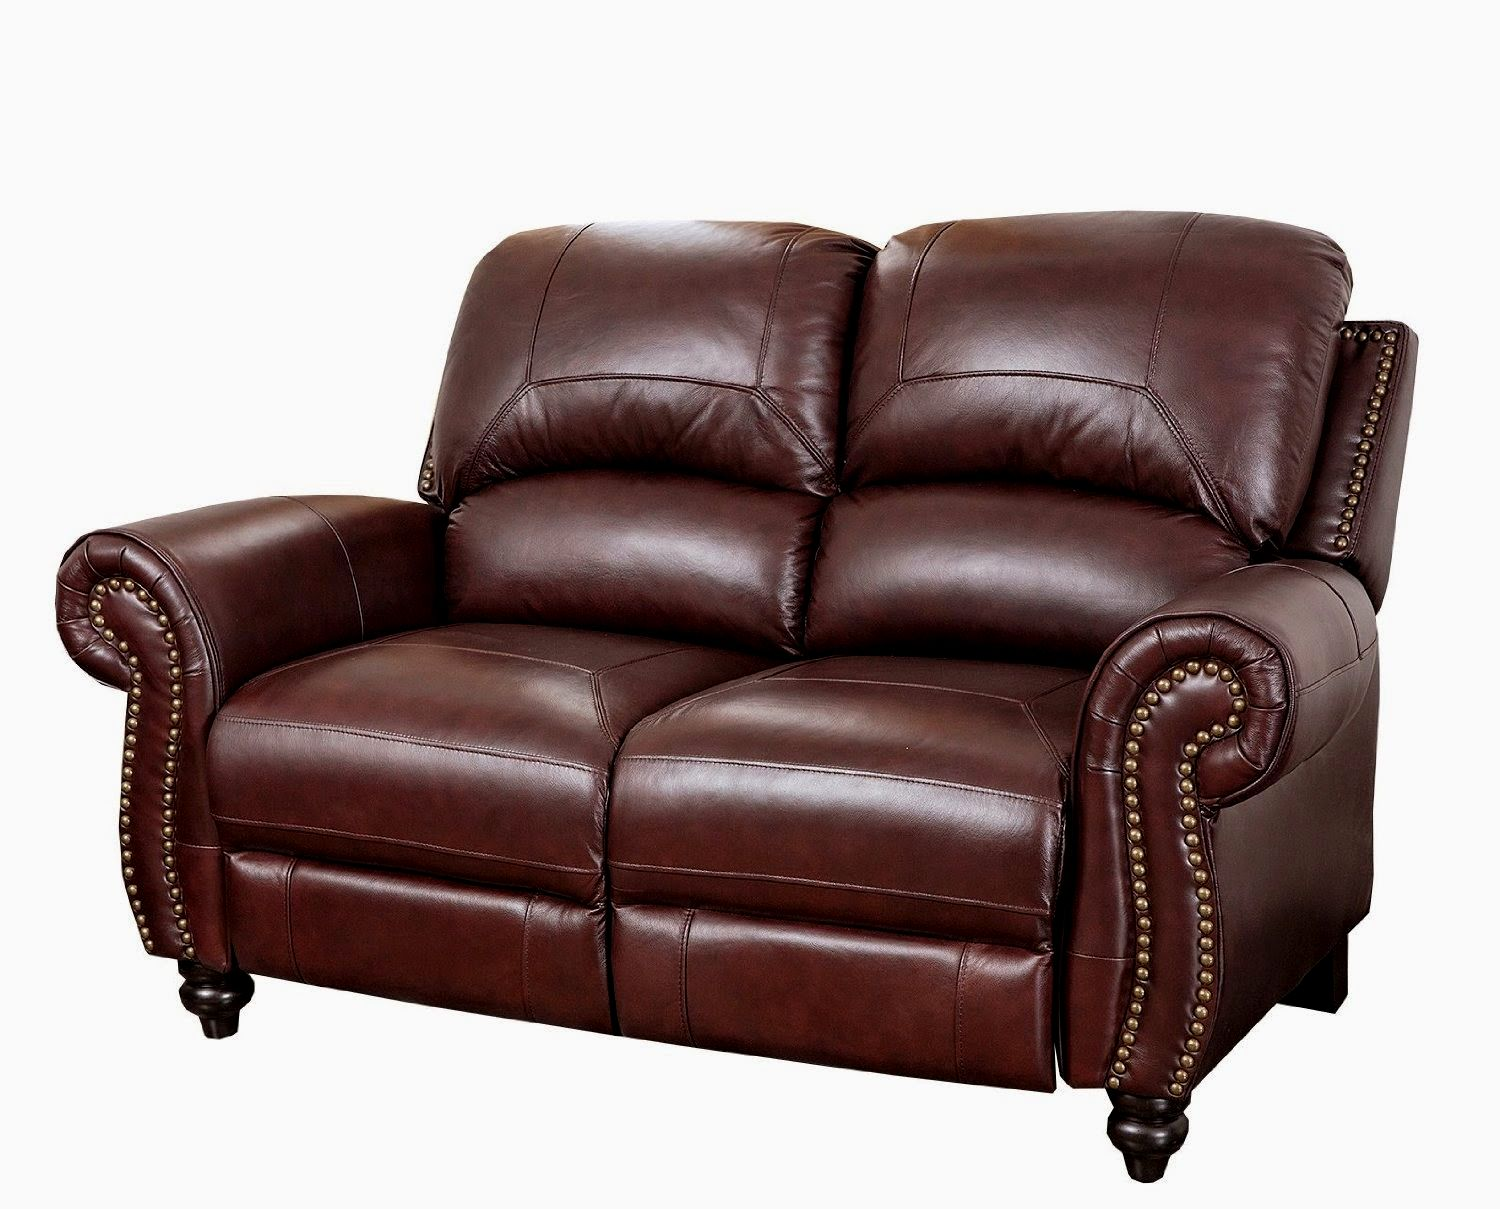 excellent leather sofa set image-Fantastic Leather sofa Set Model